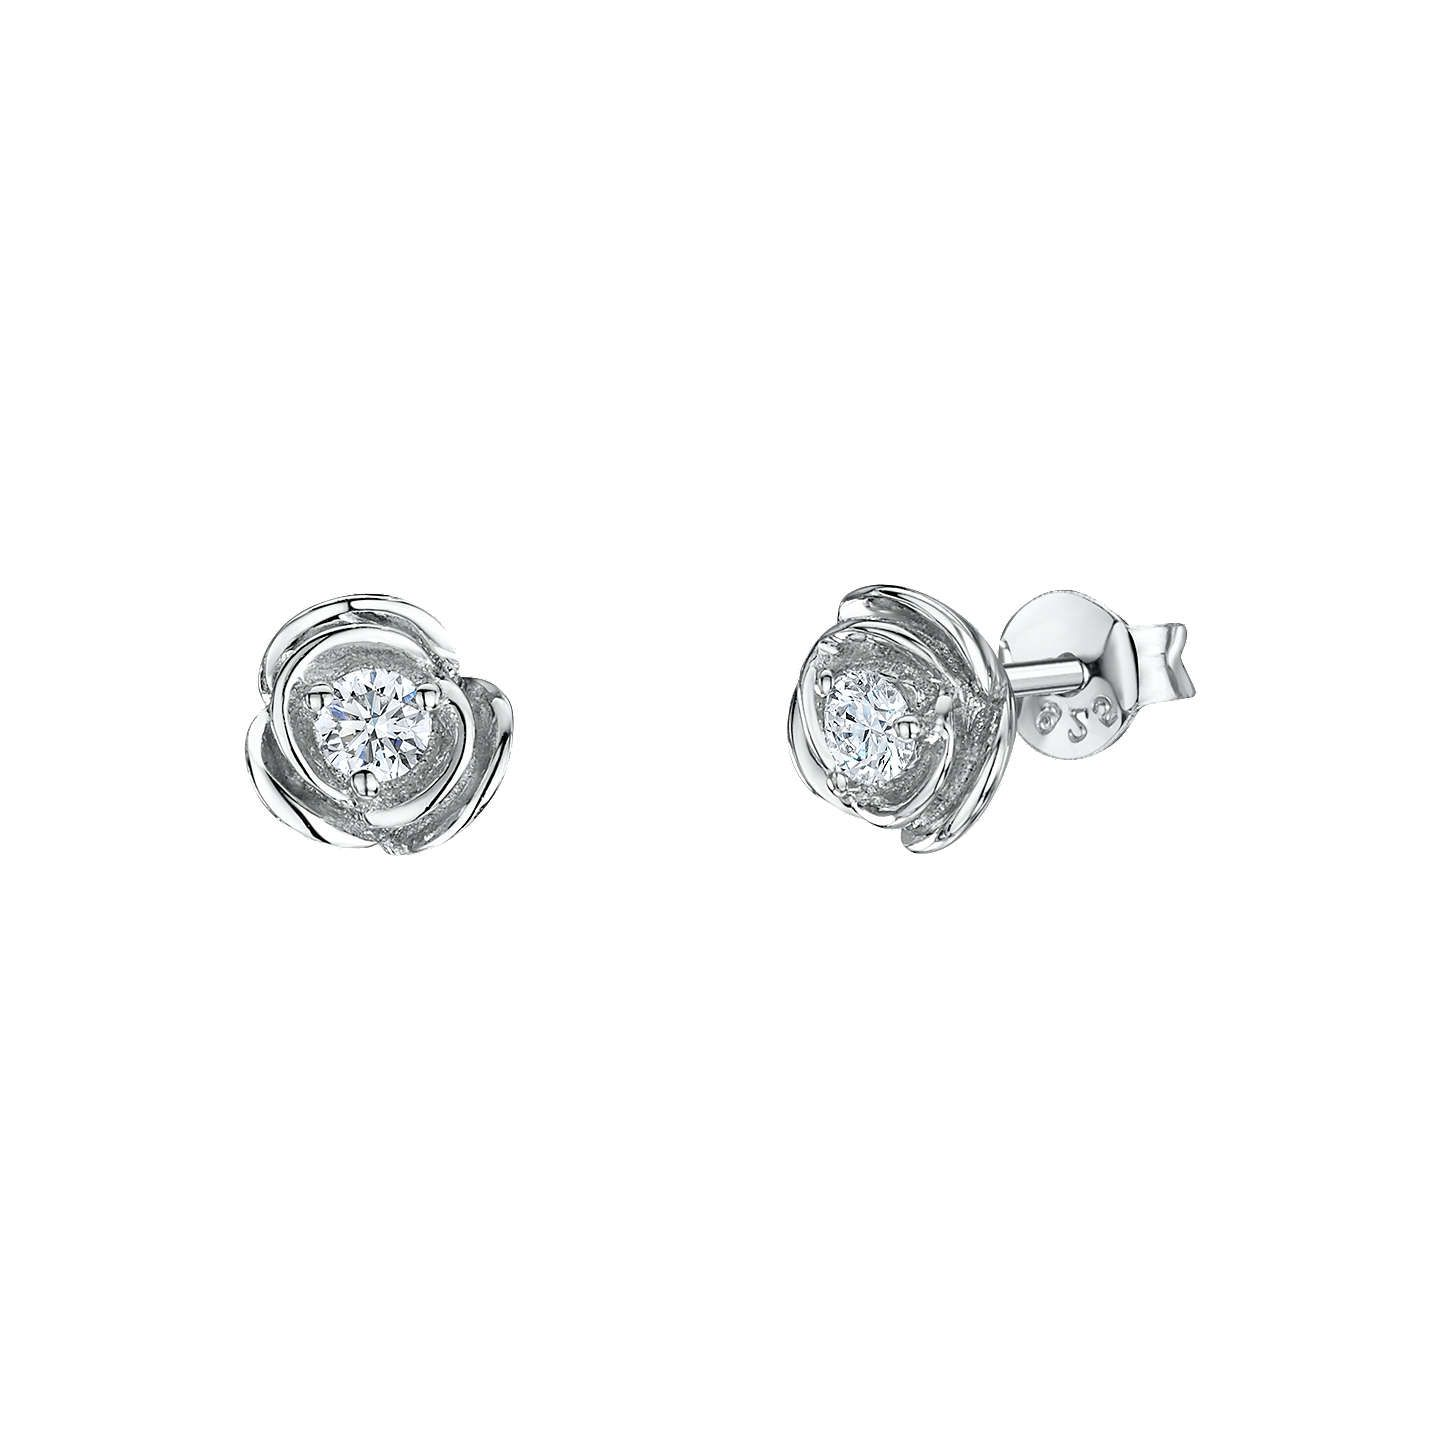 5a45cd9cab72 BuyJools by Jenny Brown Cubic Zirconia Round Stud Earrings